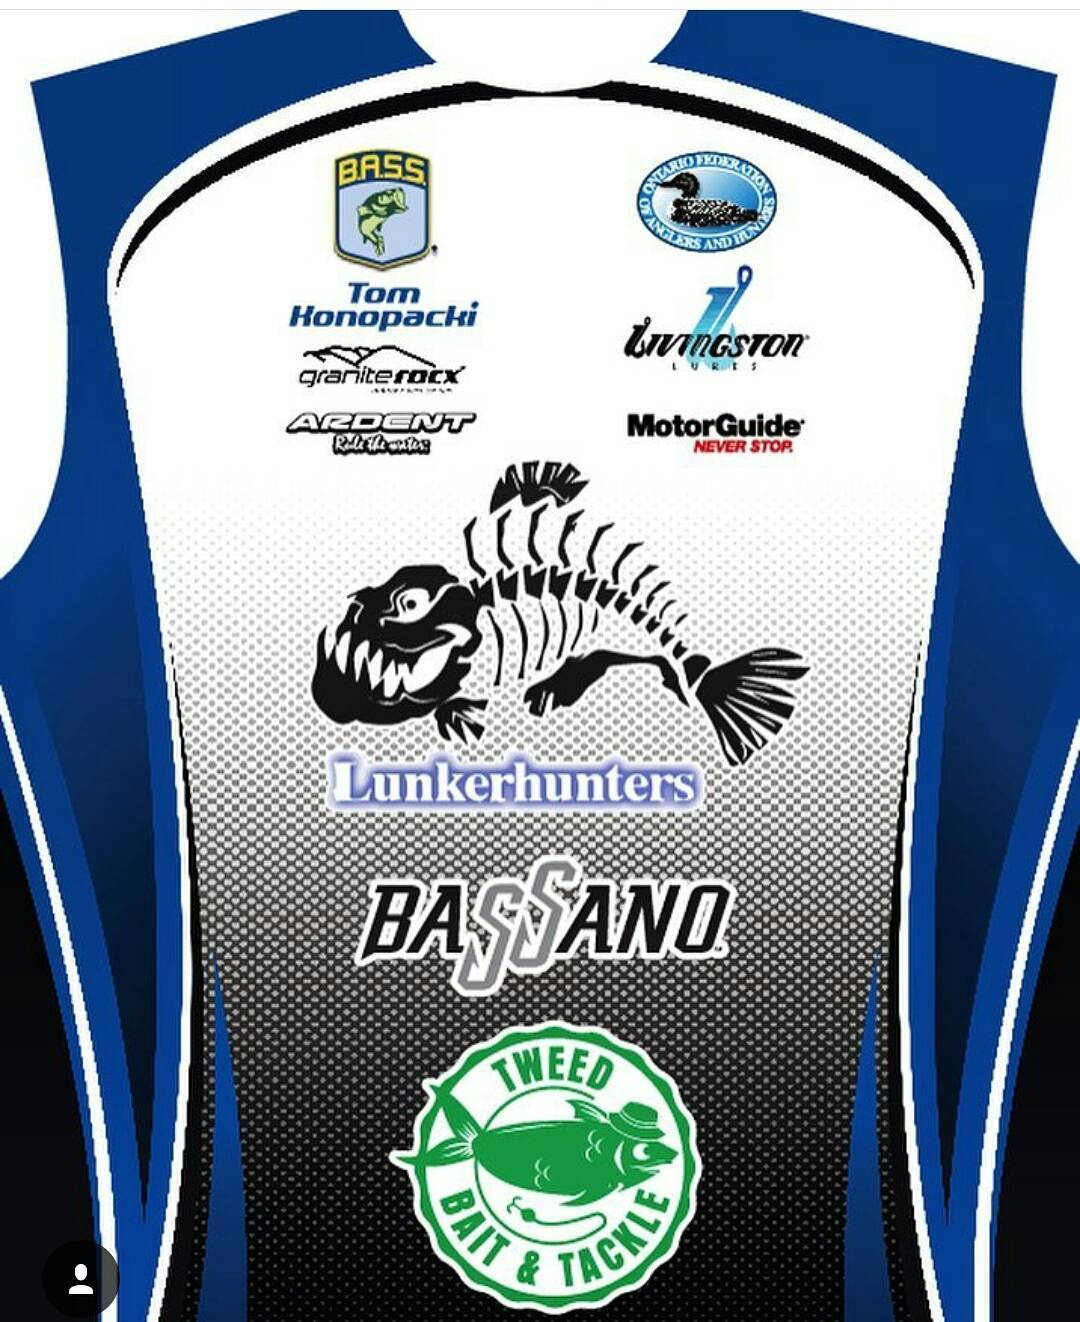 2016 Fishing Jersey from Lunkerhunters with our logo.  Looks sweet! Excited to be a part again this year, thanks guys! @lunkerhunter_tom #lunkerhunters #fishing #getoutside #graniterocx #outdoorsrocx